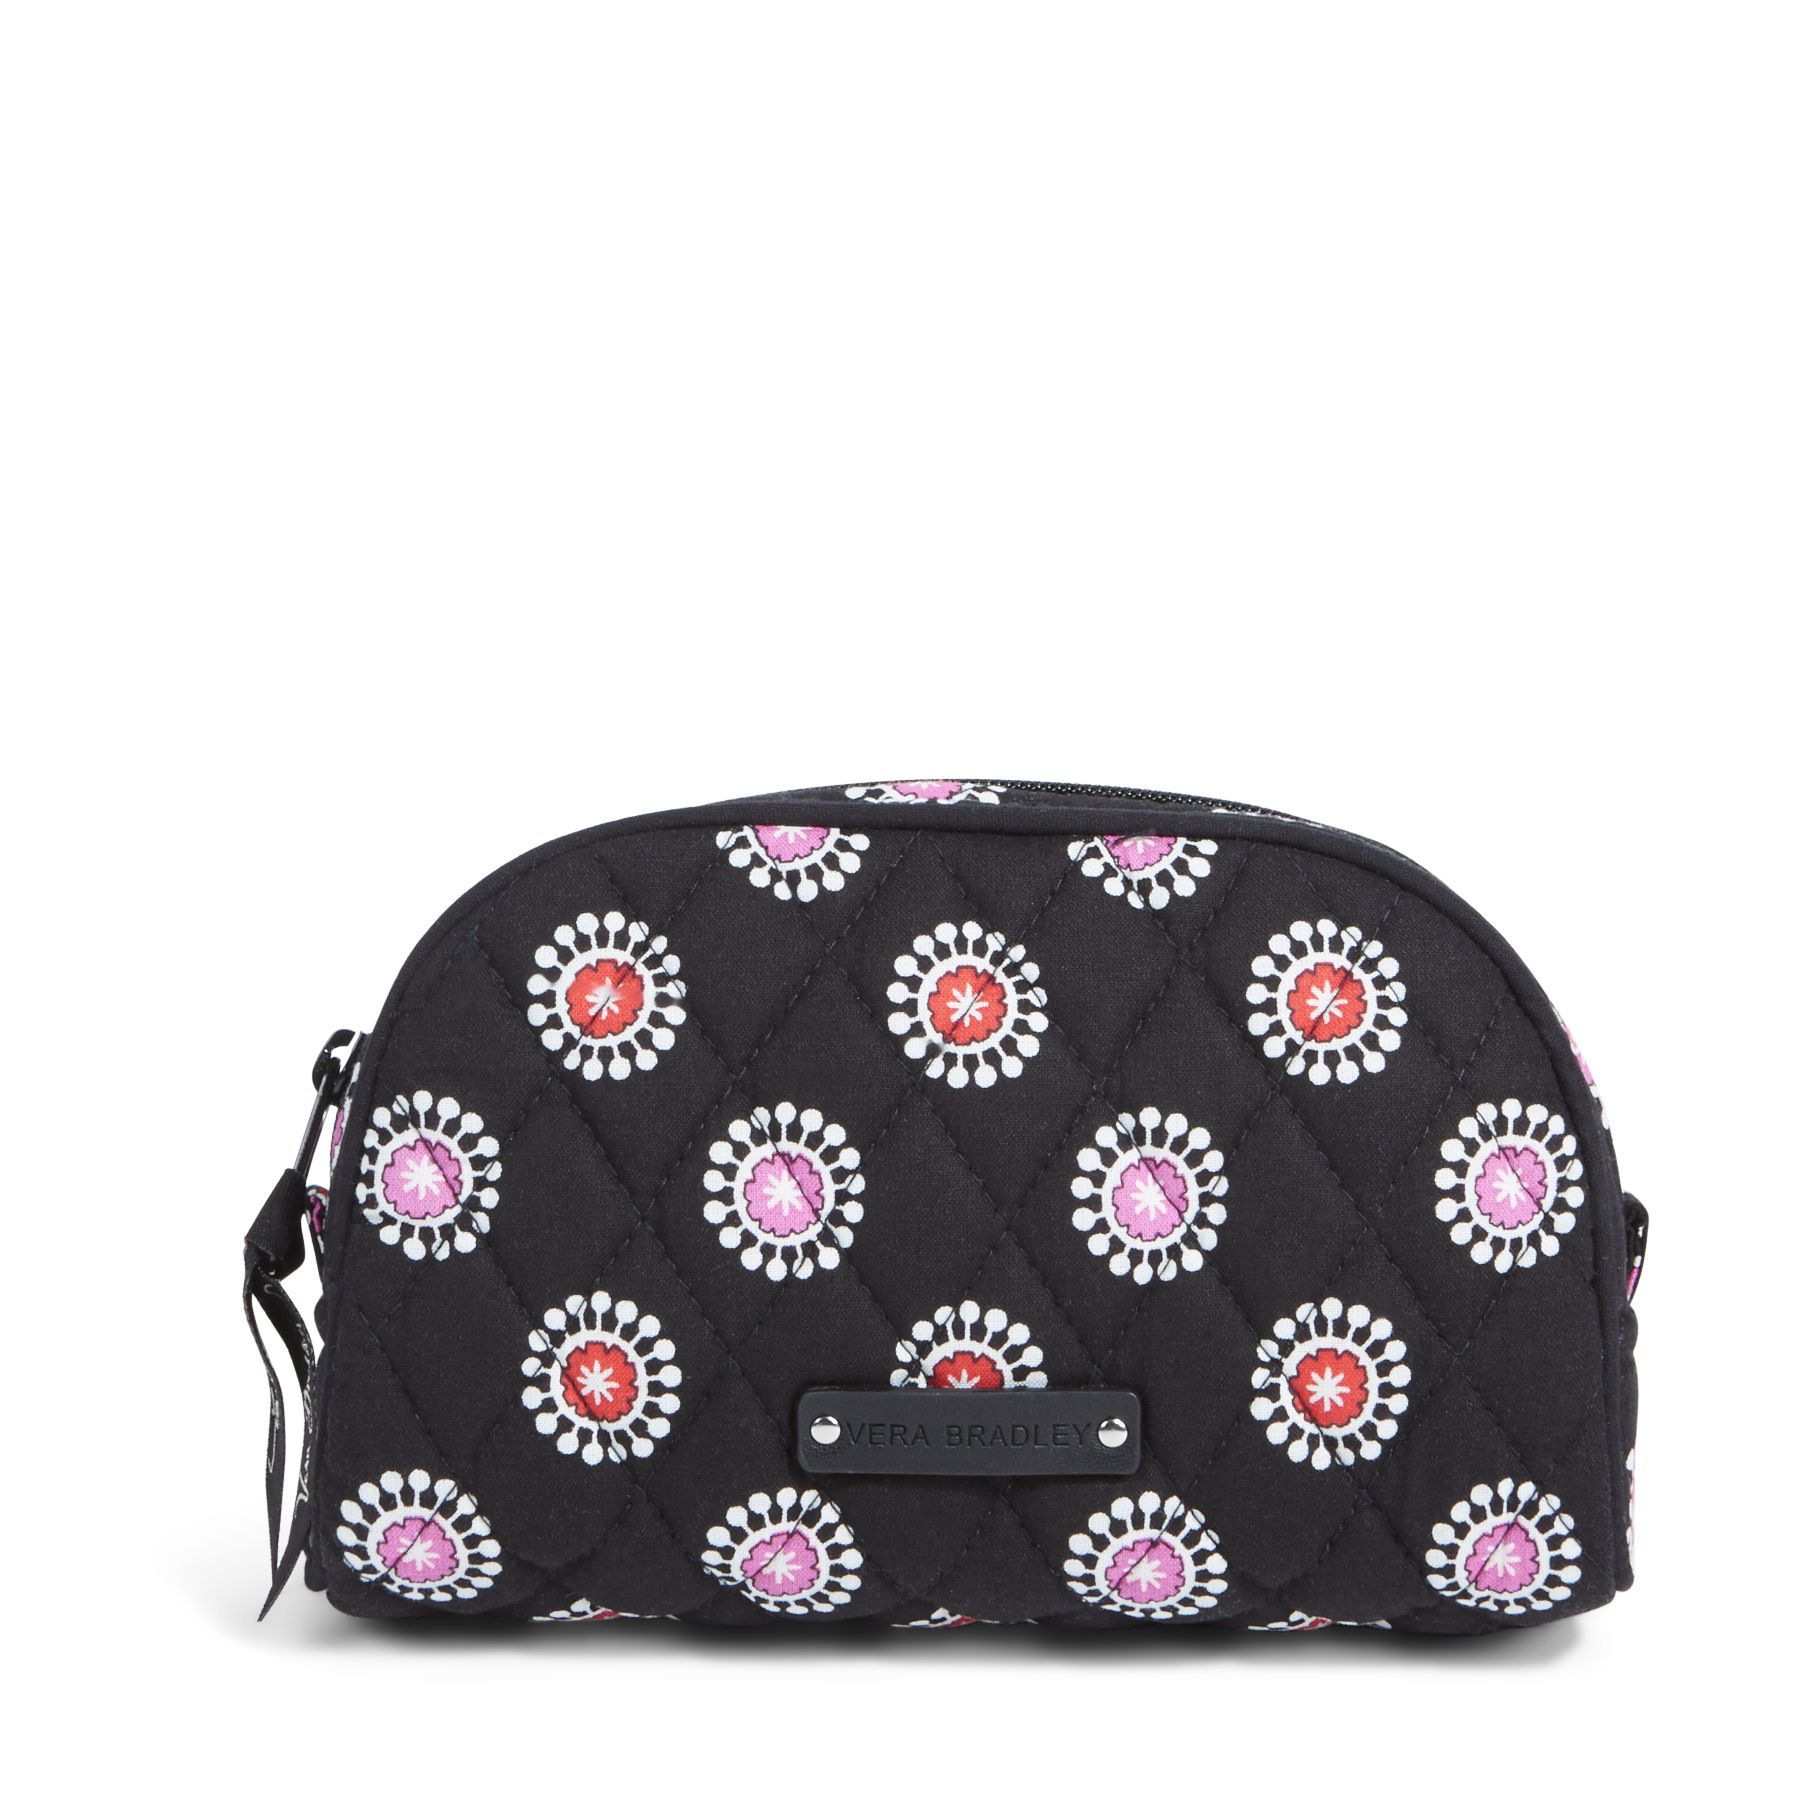 Vera Bradley Small Zip Cosmetic Bag in Parisian Pom Poms